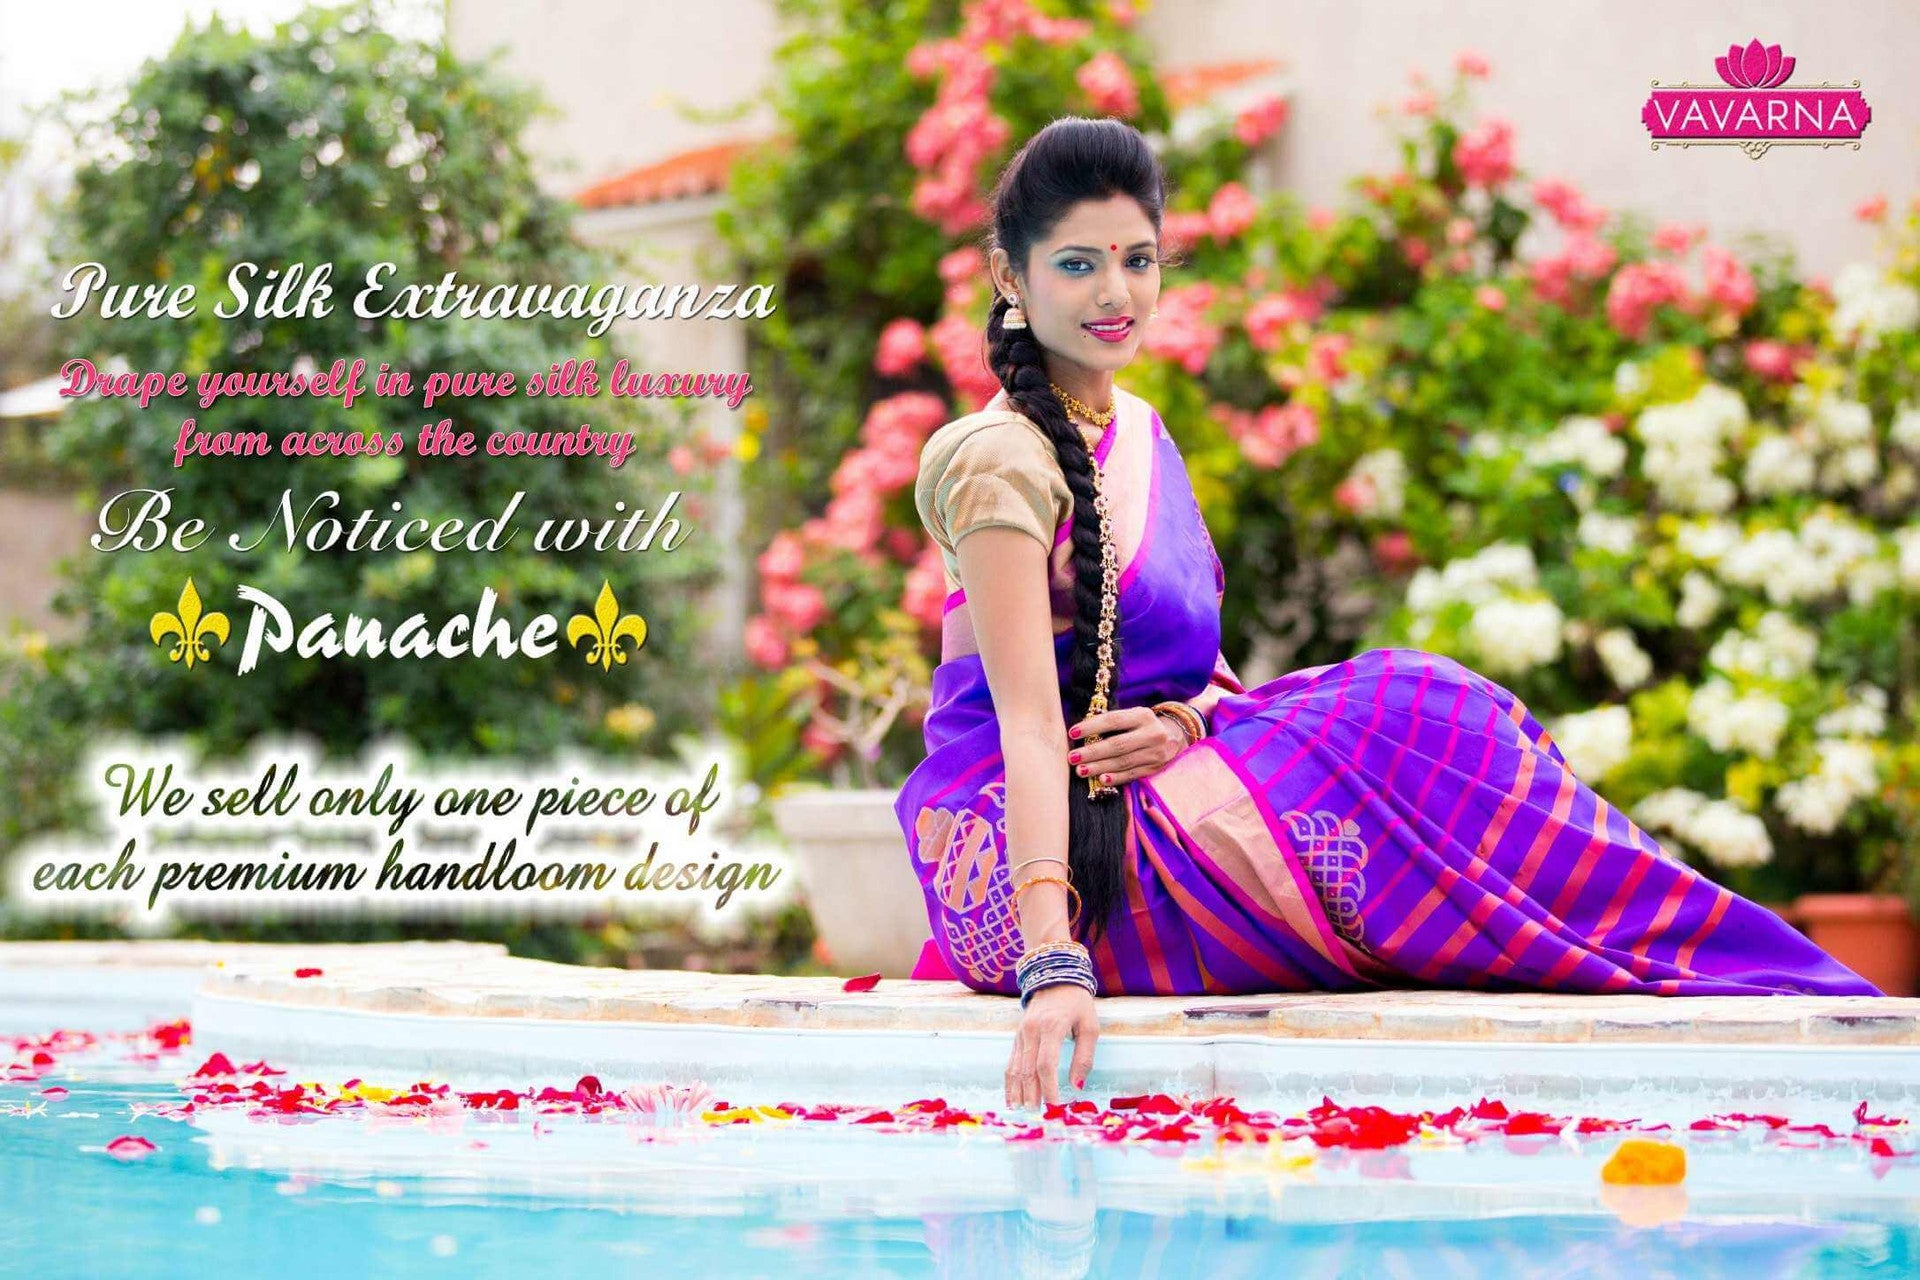 Pure Silk Saree Extravaganza from across the country